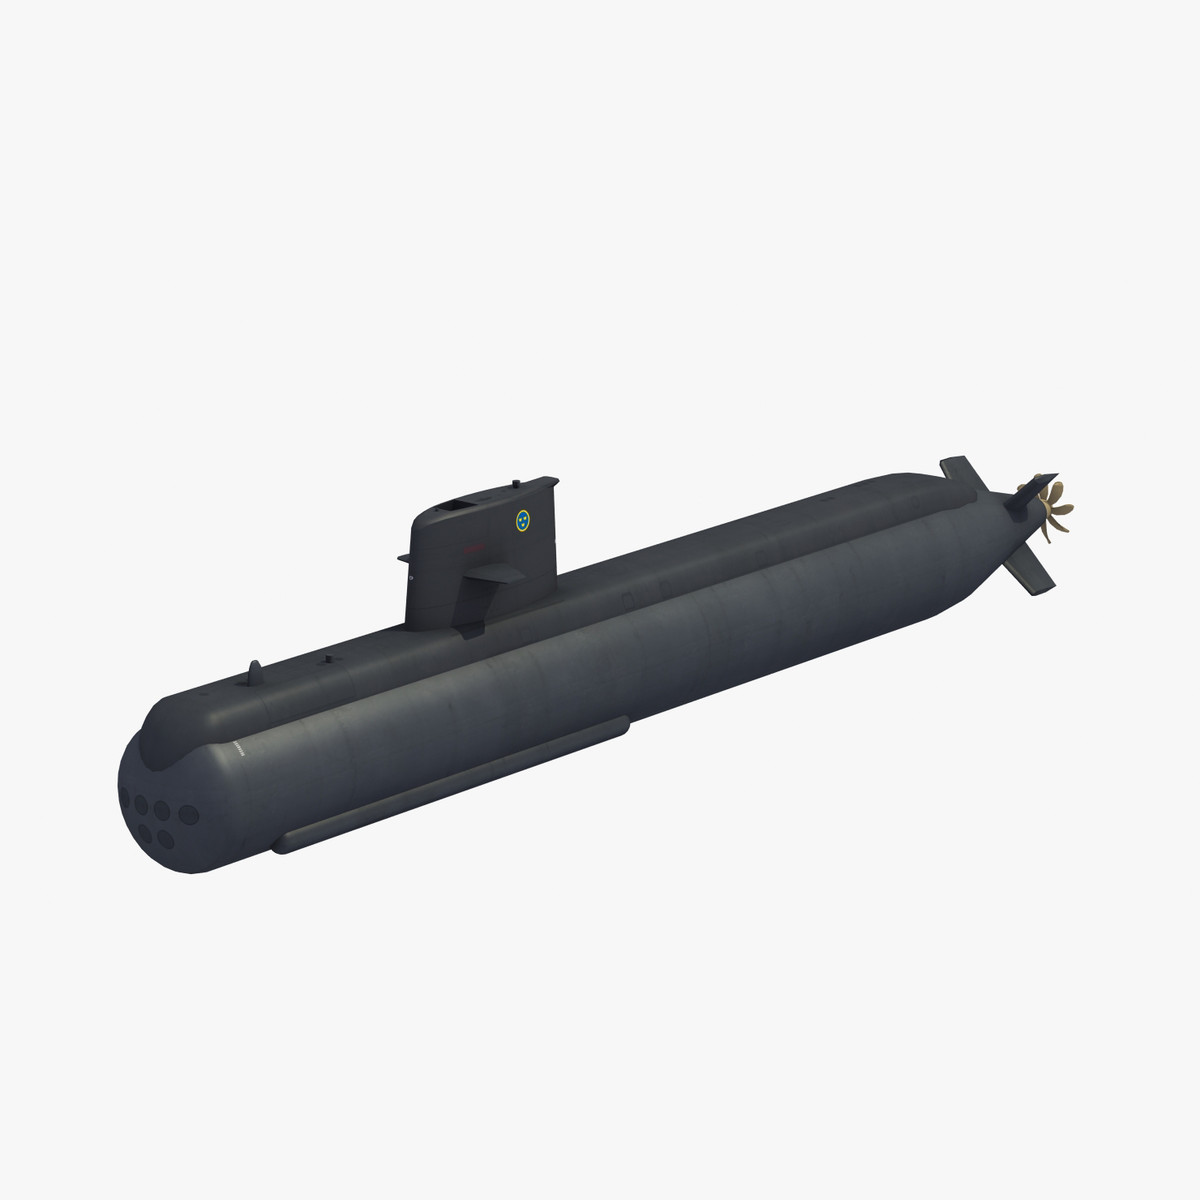 gotland attack submarine 3D model